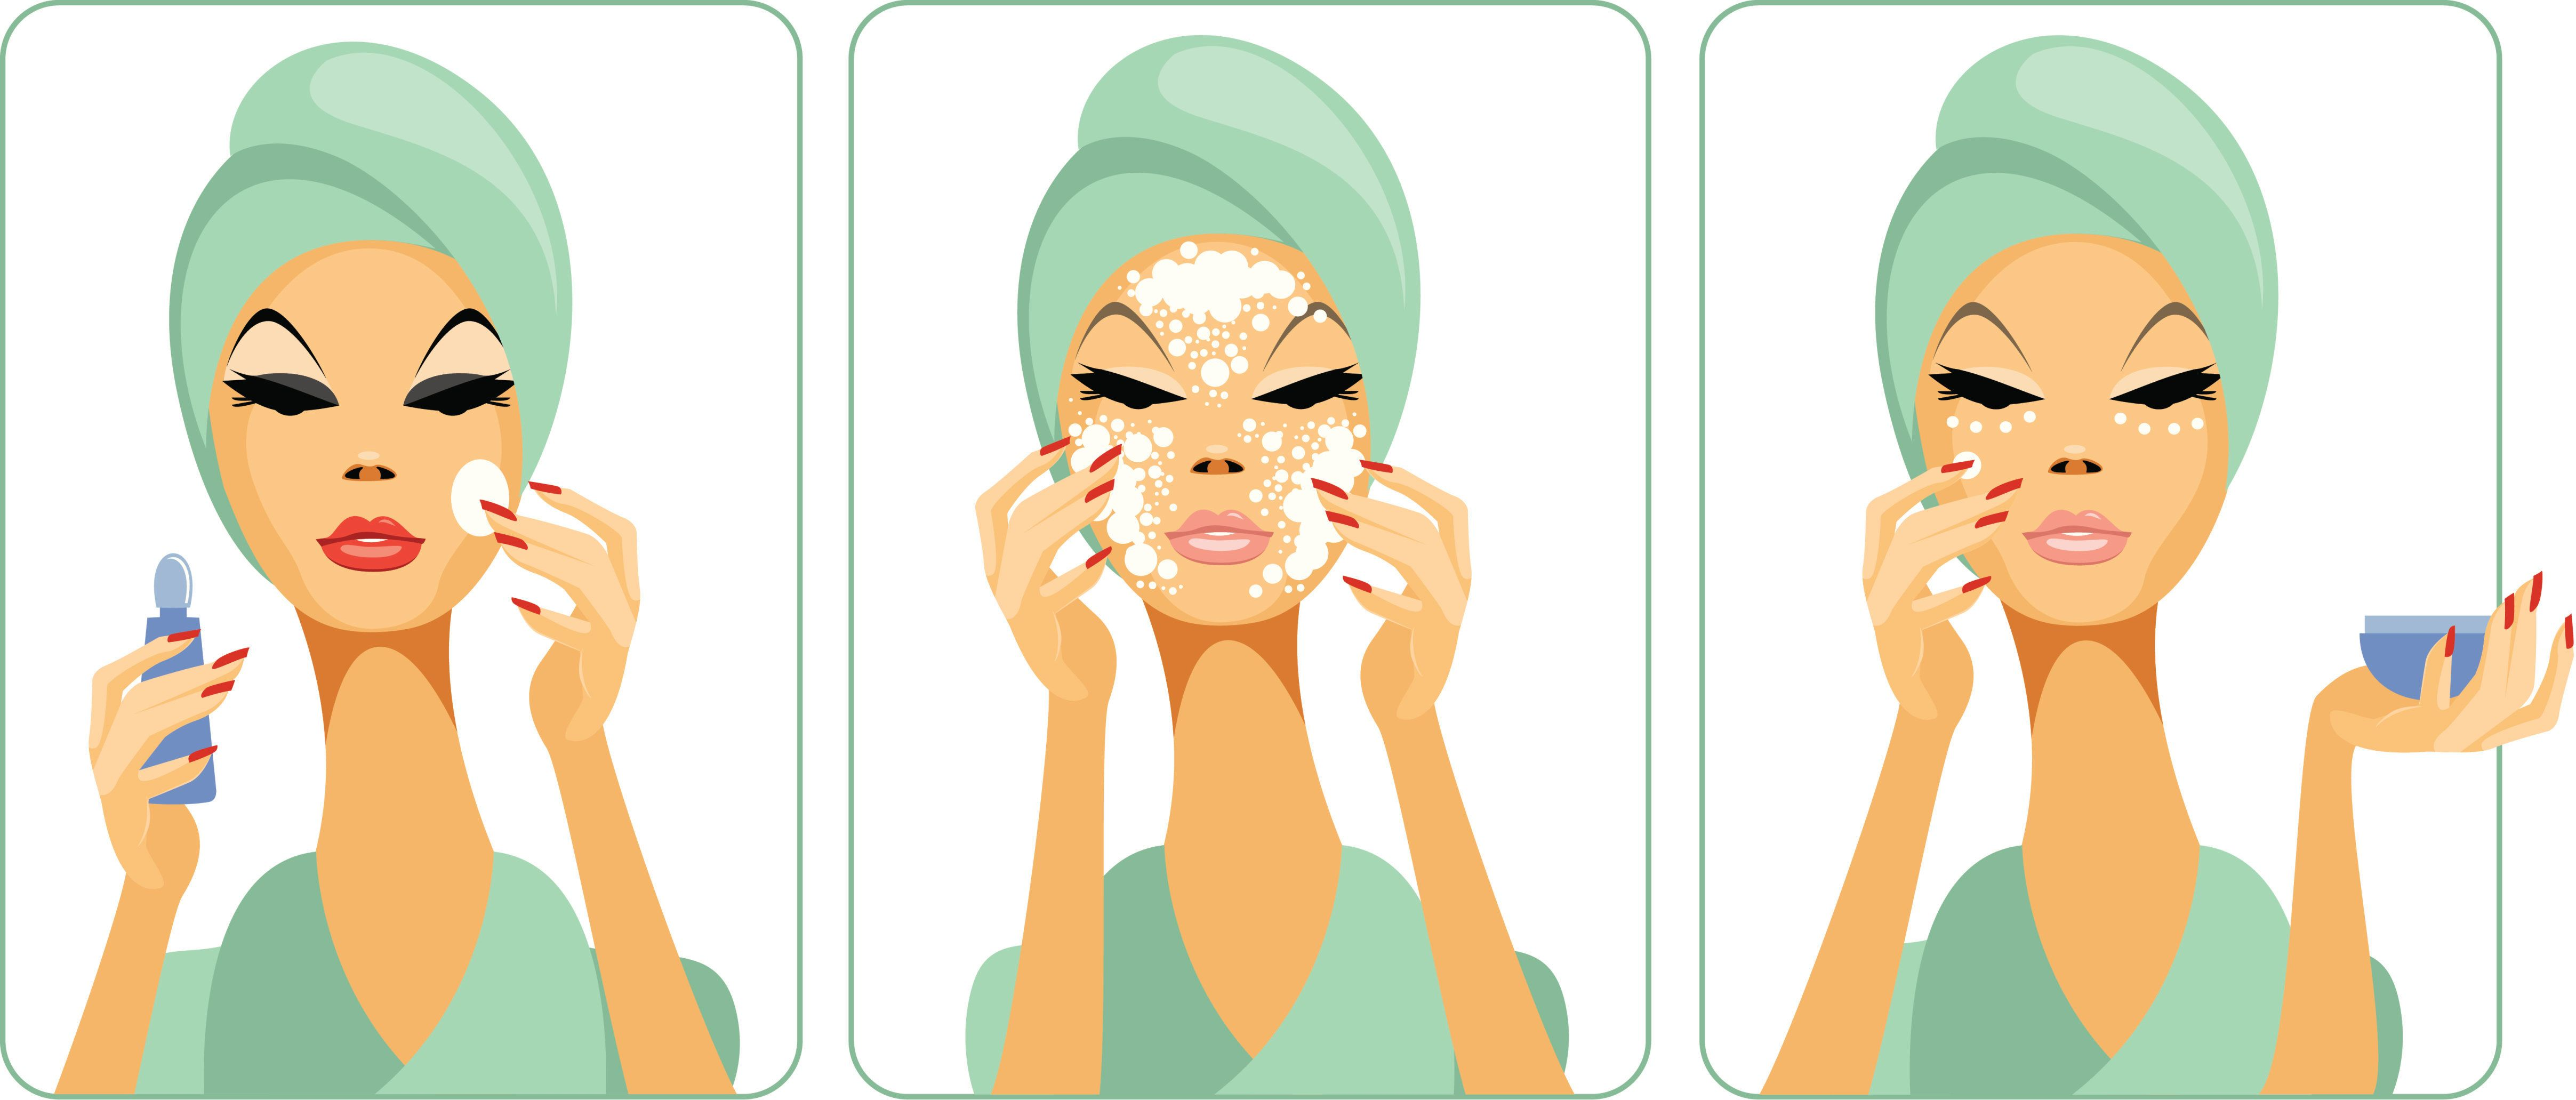 Be cautious of intense exfoliation in the springtime, as it can make your skin more sensitive to the upcoming increase in sun